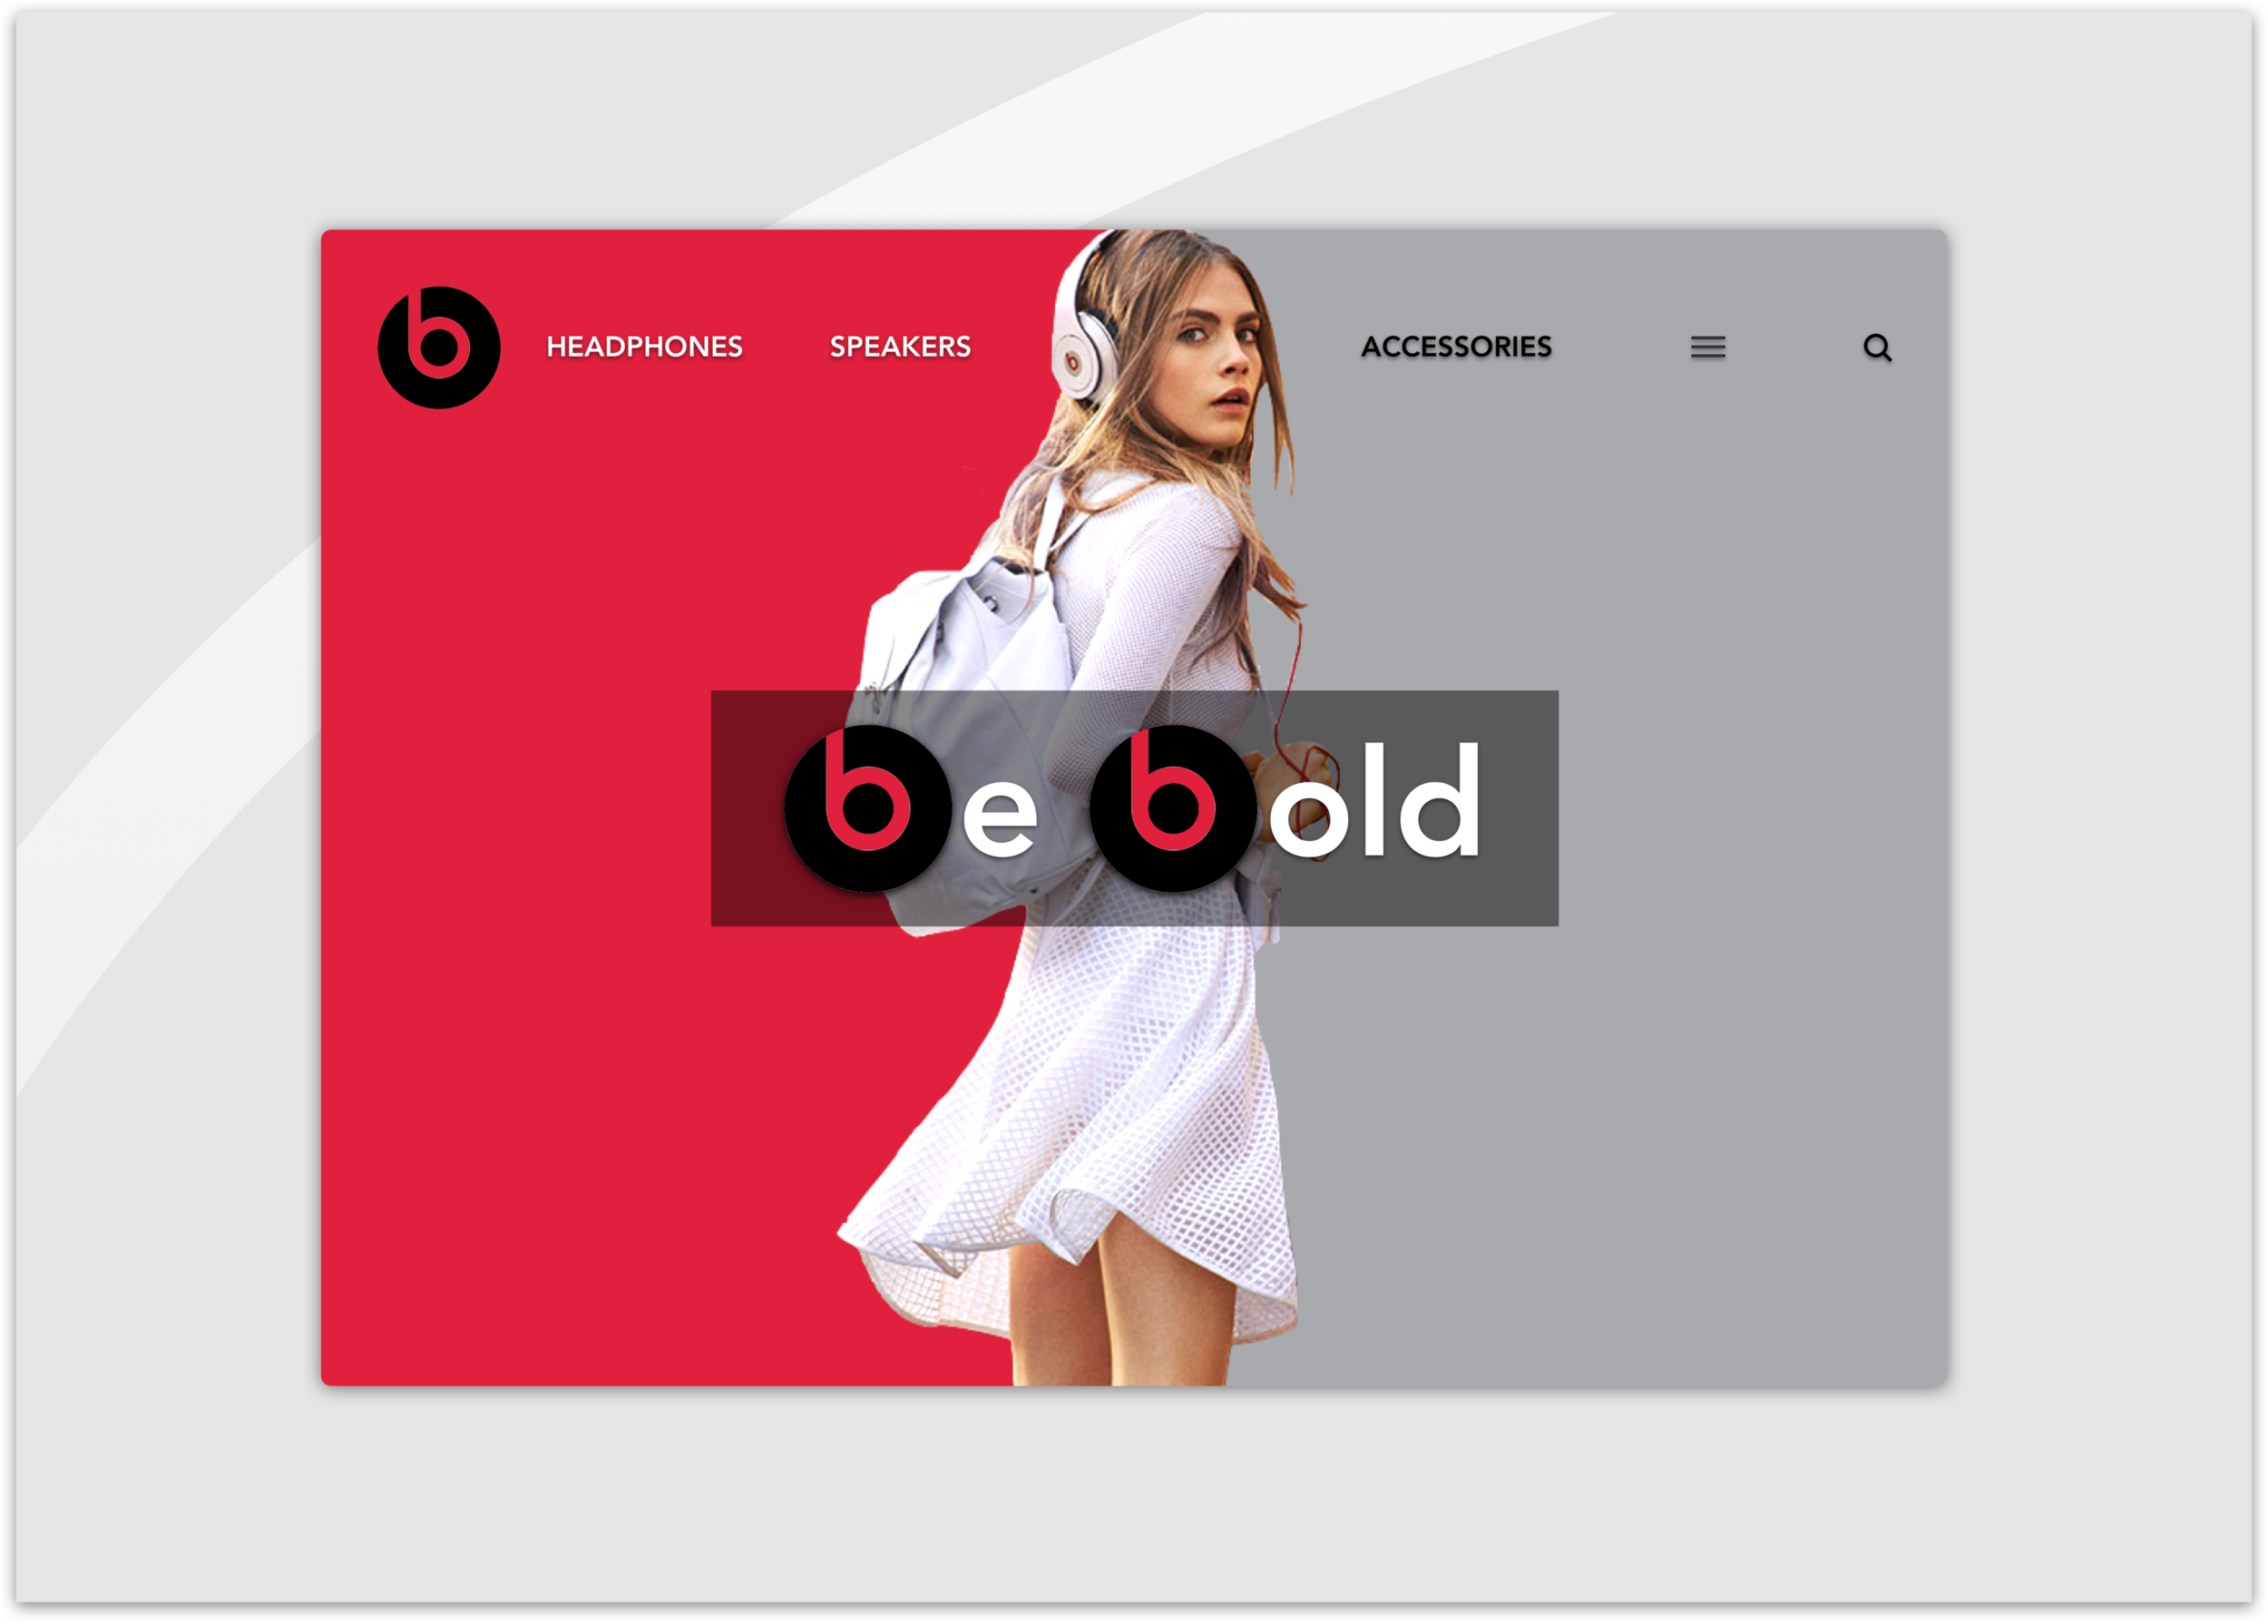 Day 3: Landing Page